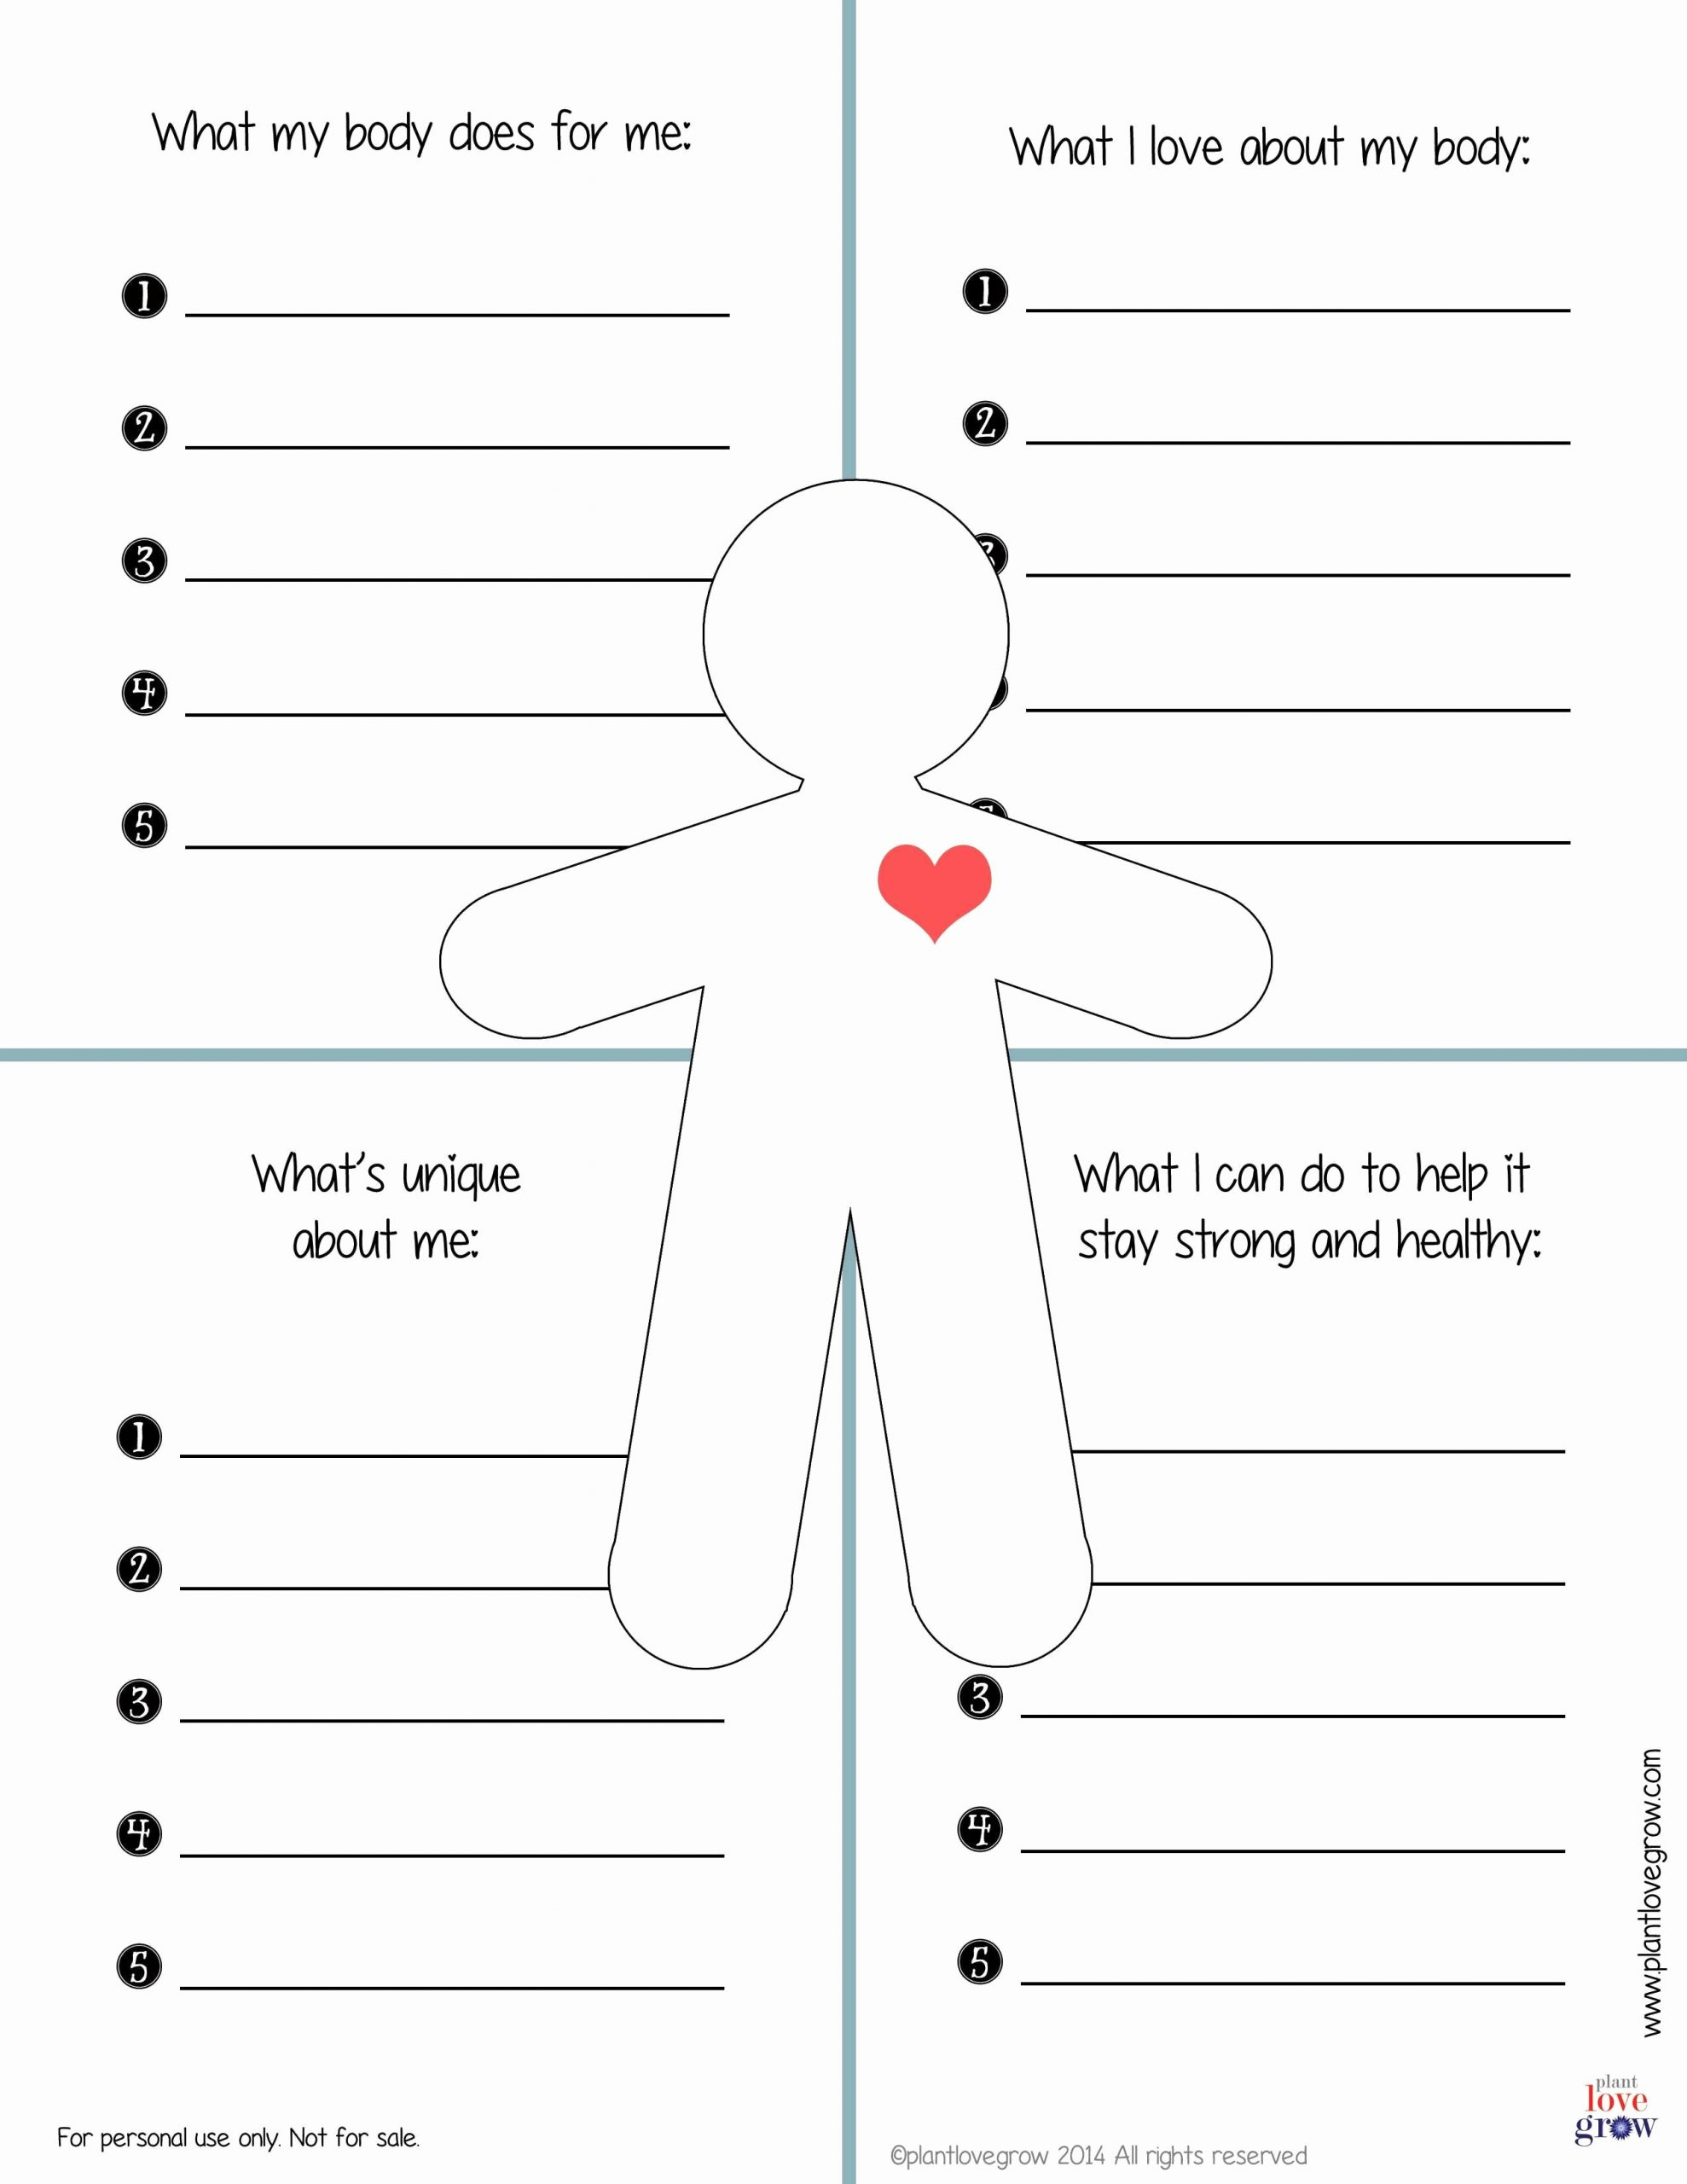 Building Self Confidence Worksheets Awesome Building Self Esteem In Teenagers Worksheets — Excelguider